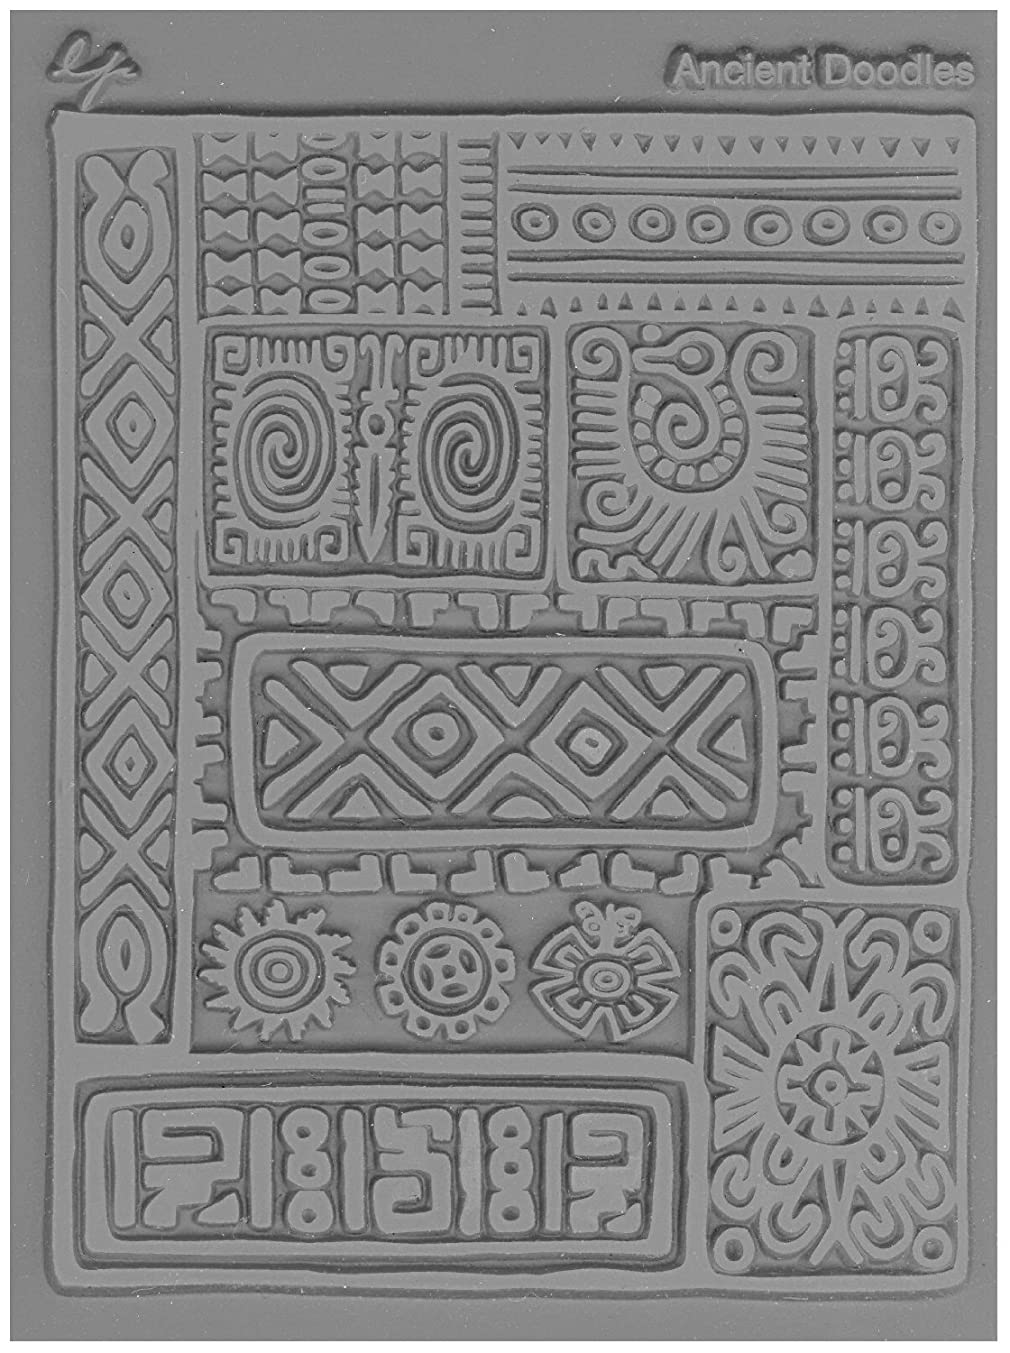 Lisa Pavelka Texture Stamp Ancient Doodle (Style #034)